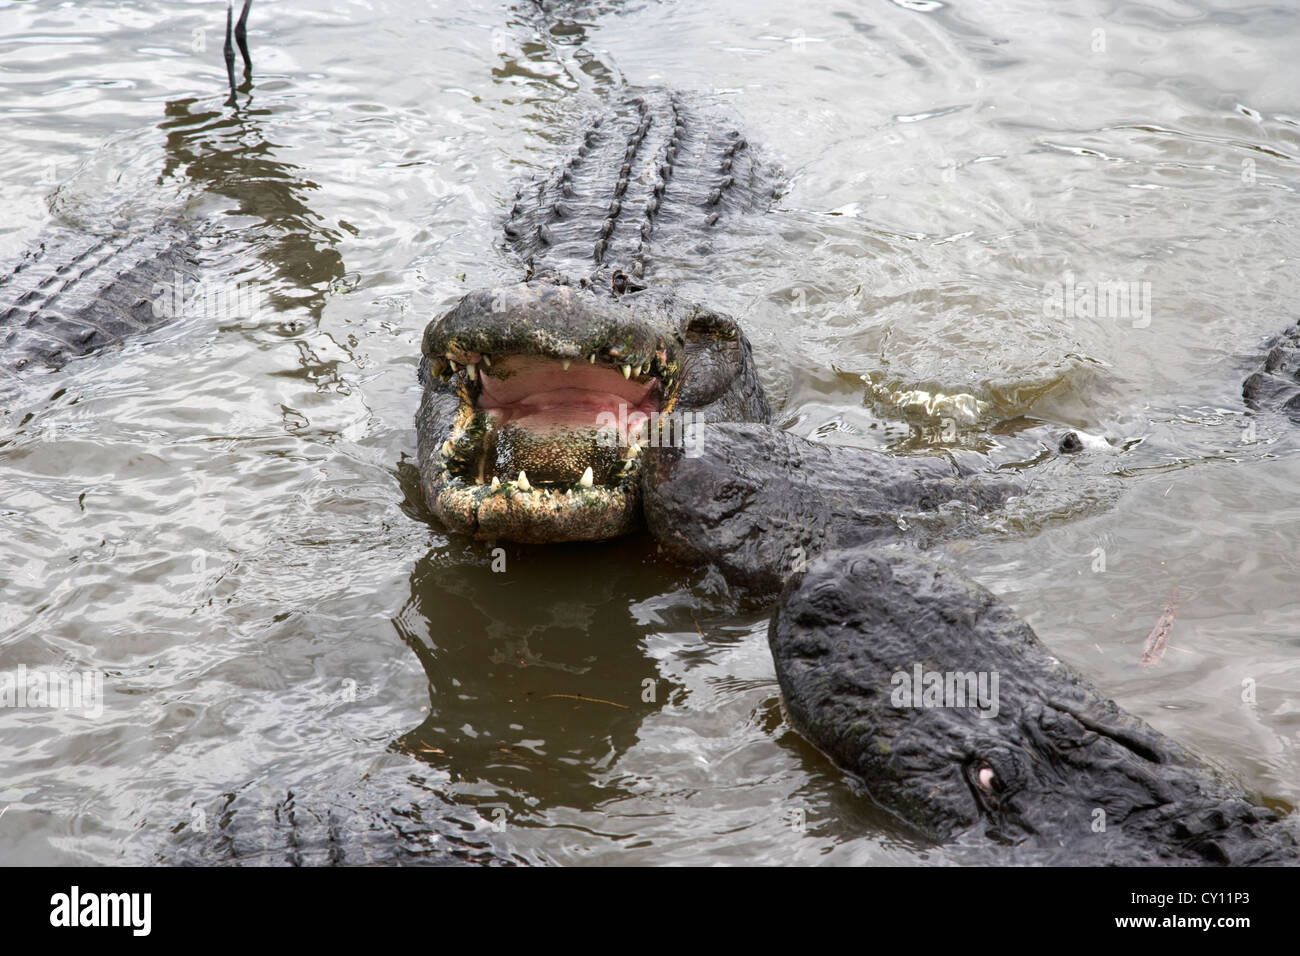 large american alligator with jaws mouth open surrounded by other alligators florida usa - Stock Image